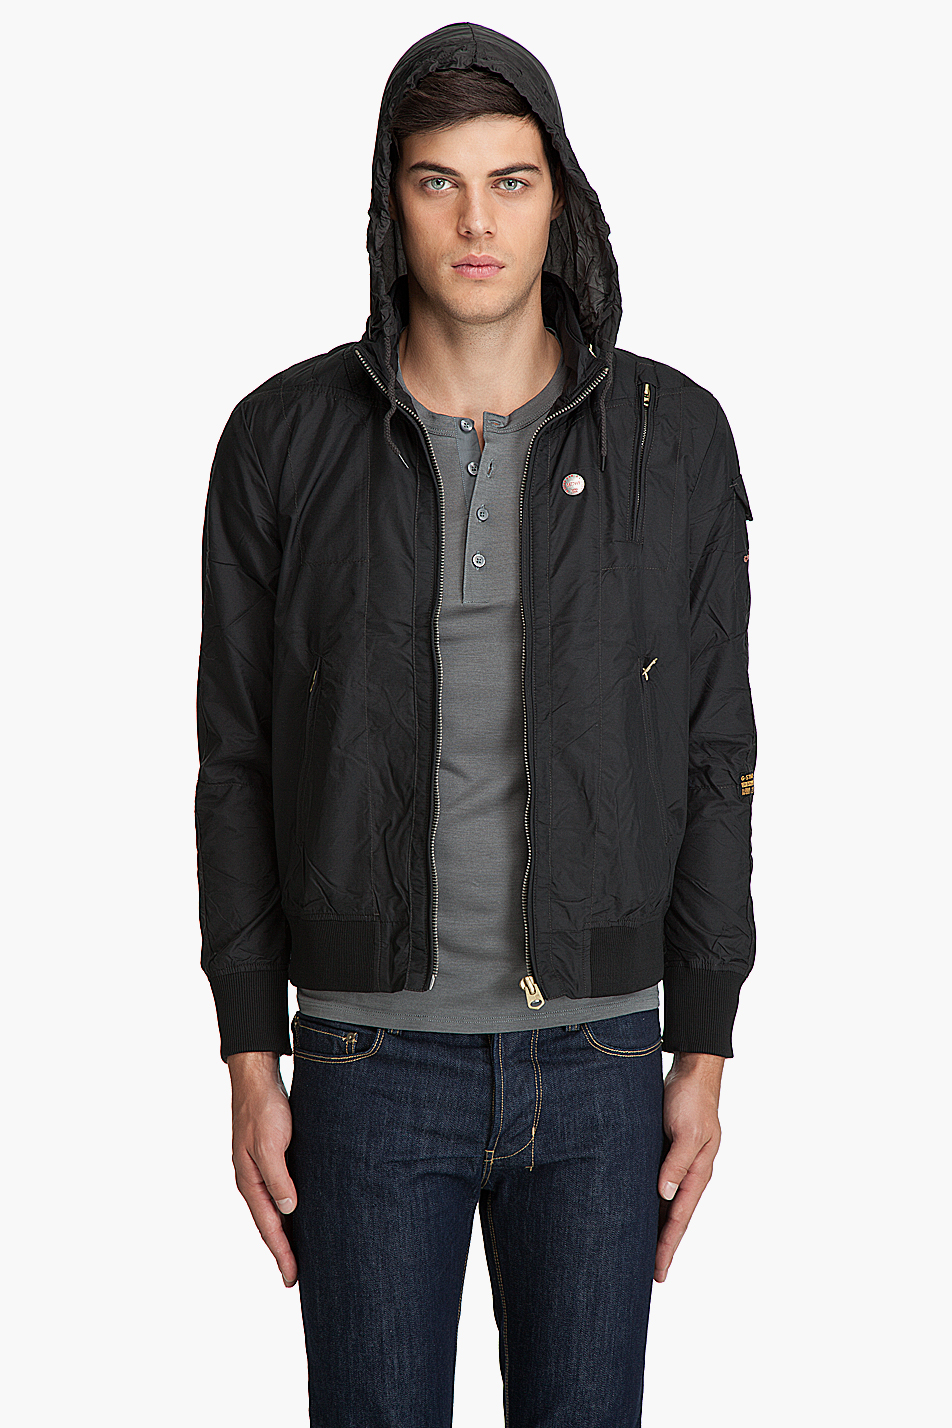 lyst g star raw new macc bomber jacket in black for men. Black Bedroom Furniture Sets. Home Design Ideas